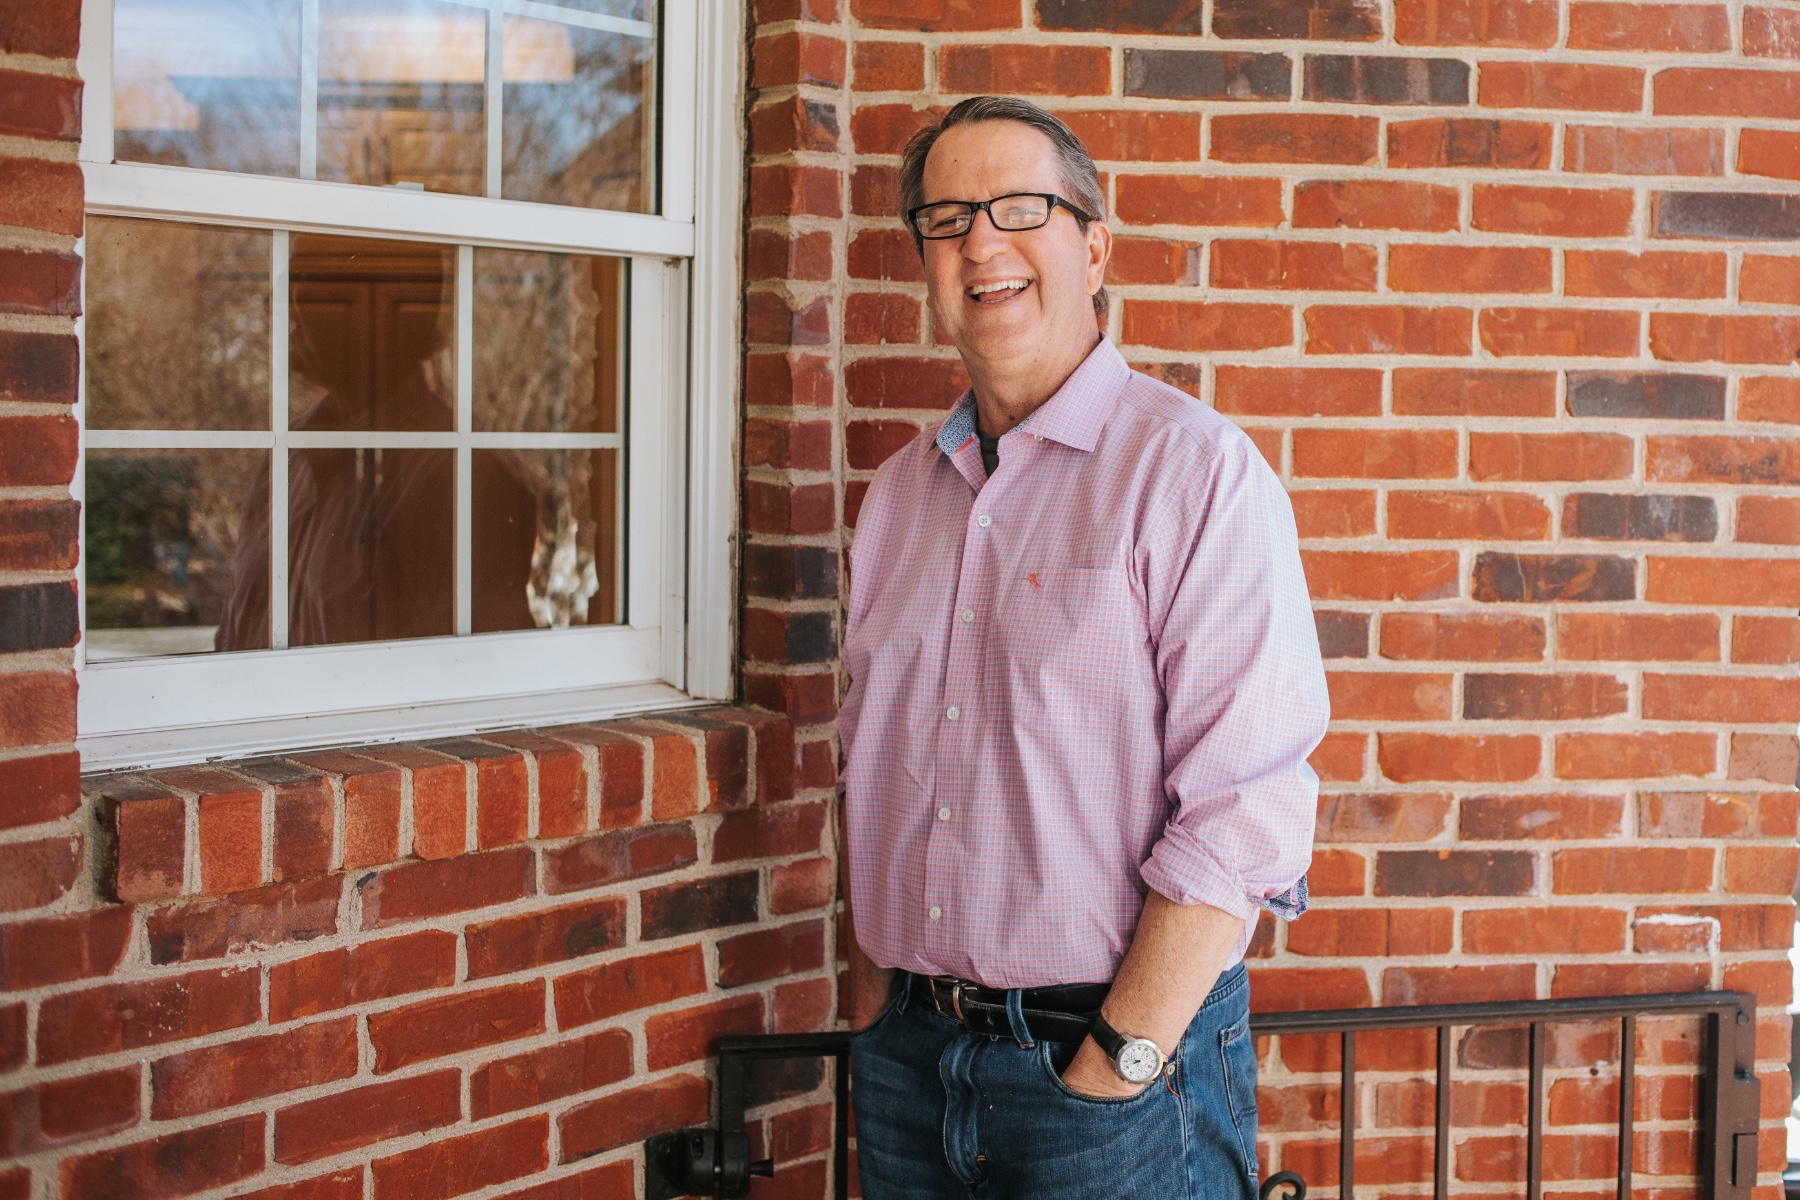 Dr. Darren Johnson, an older white man with black and grey hair, stands outside in front of a brick wall. He is wearing a light pink checkered shirt, blue jeans and black spectacles.